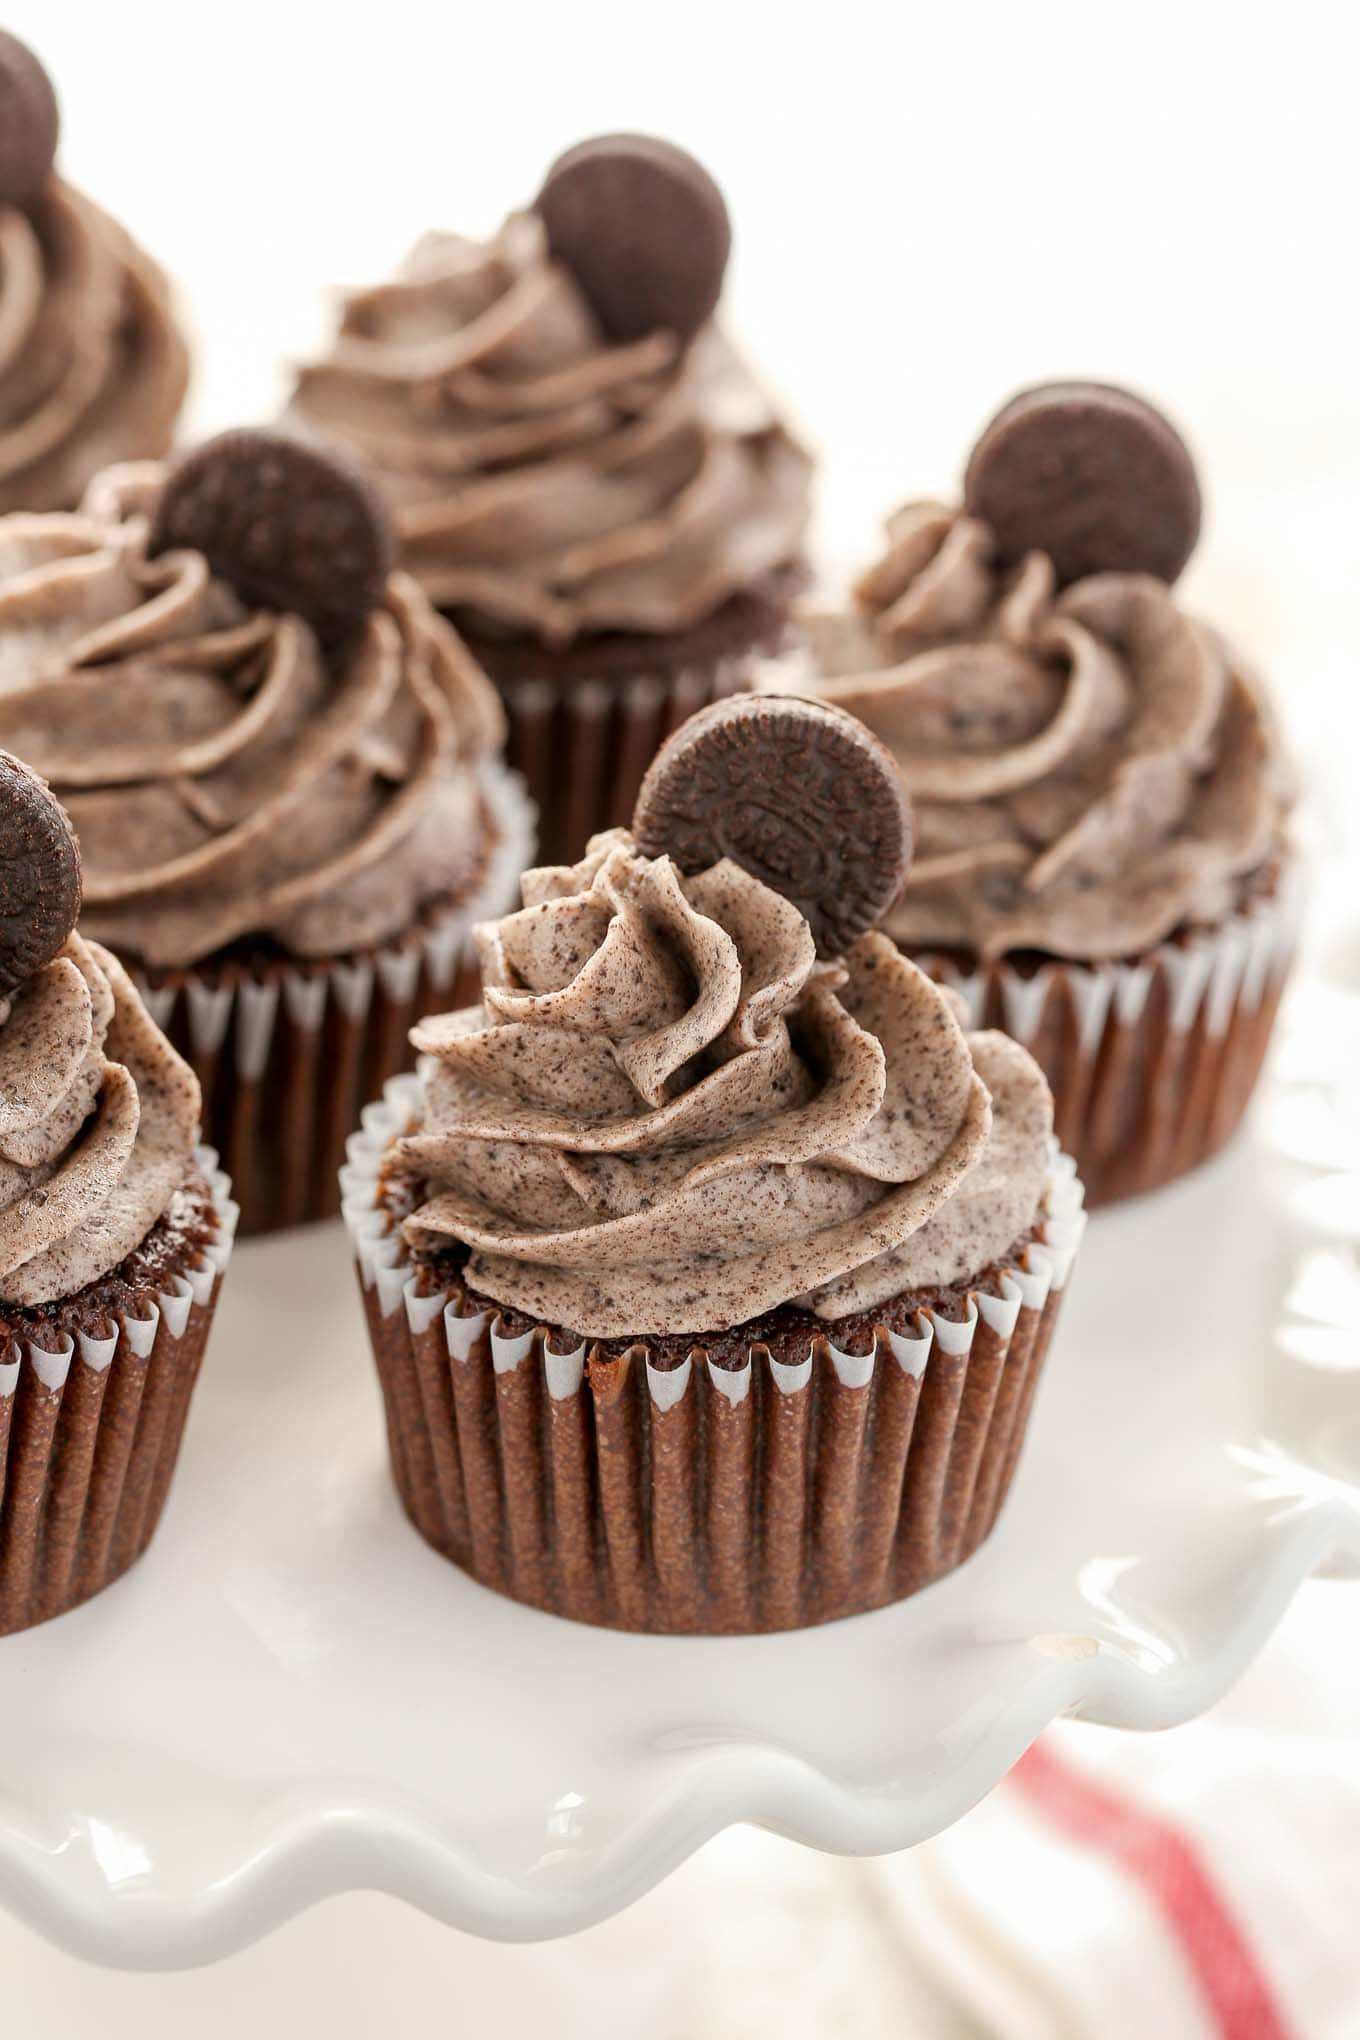 Soft, light, moist chocolate cupcakes topped with an easy Oreo buttercream frosting. These Chocolate Oreo Cupcakes are the ultimate dessert for Oreo lovers!